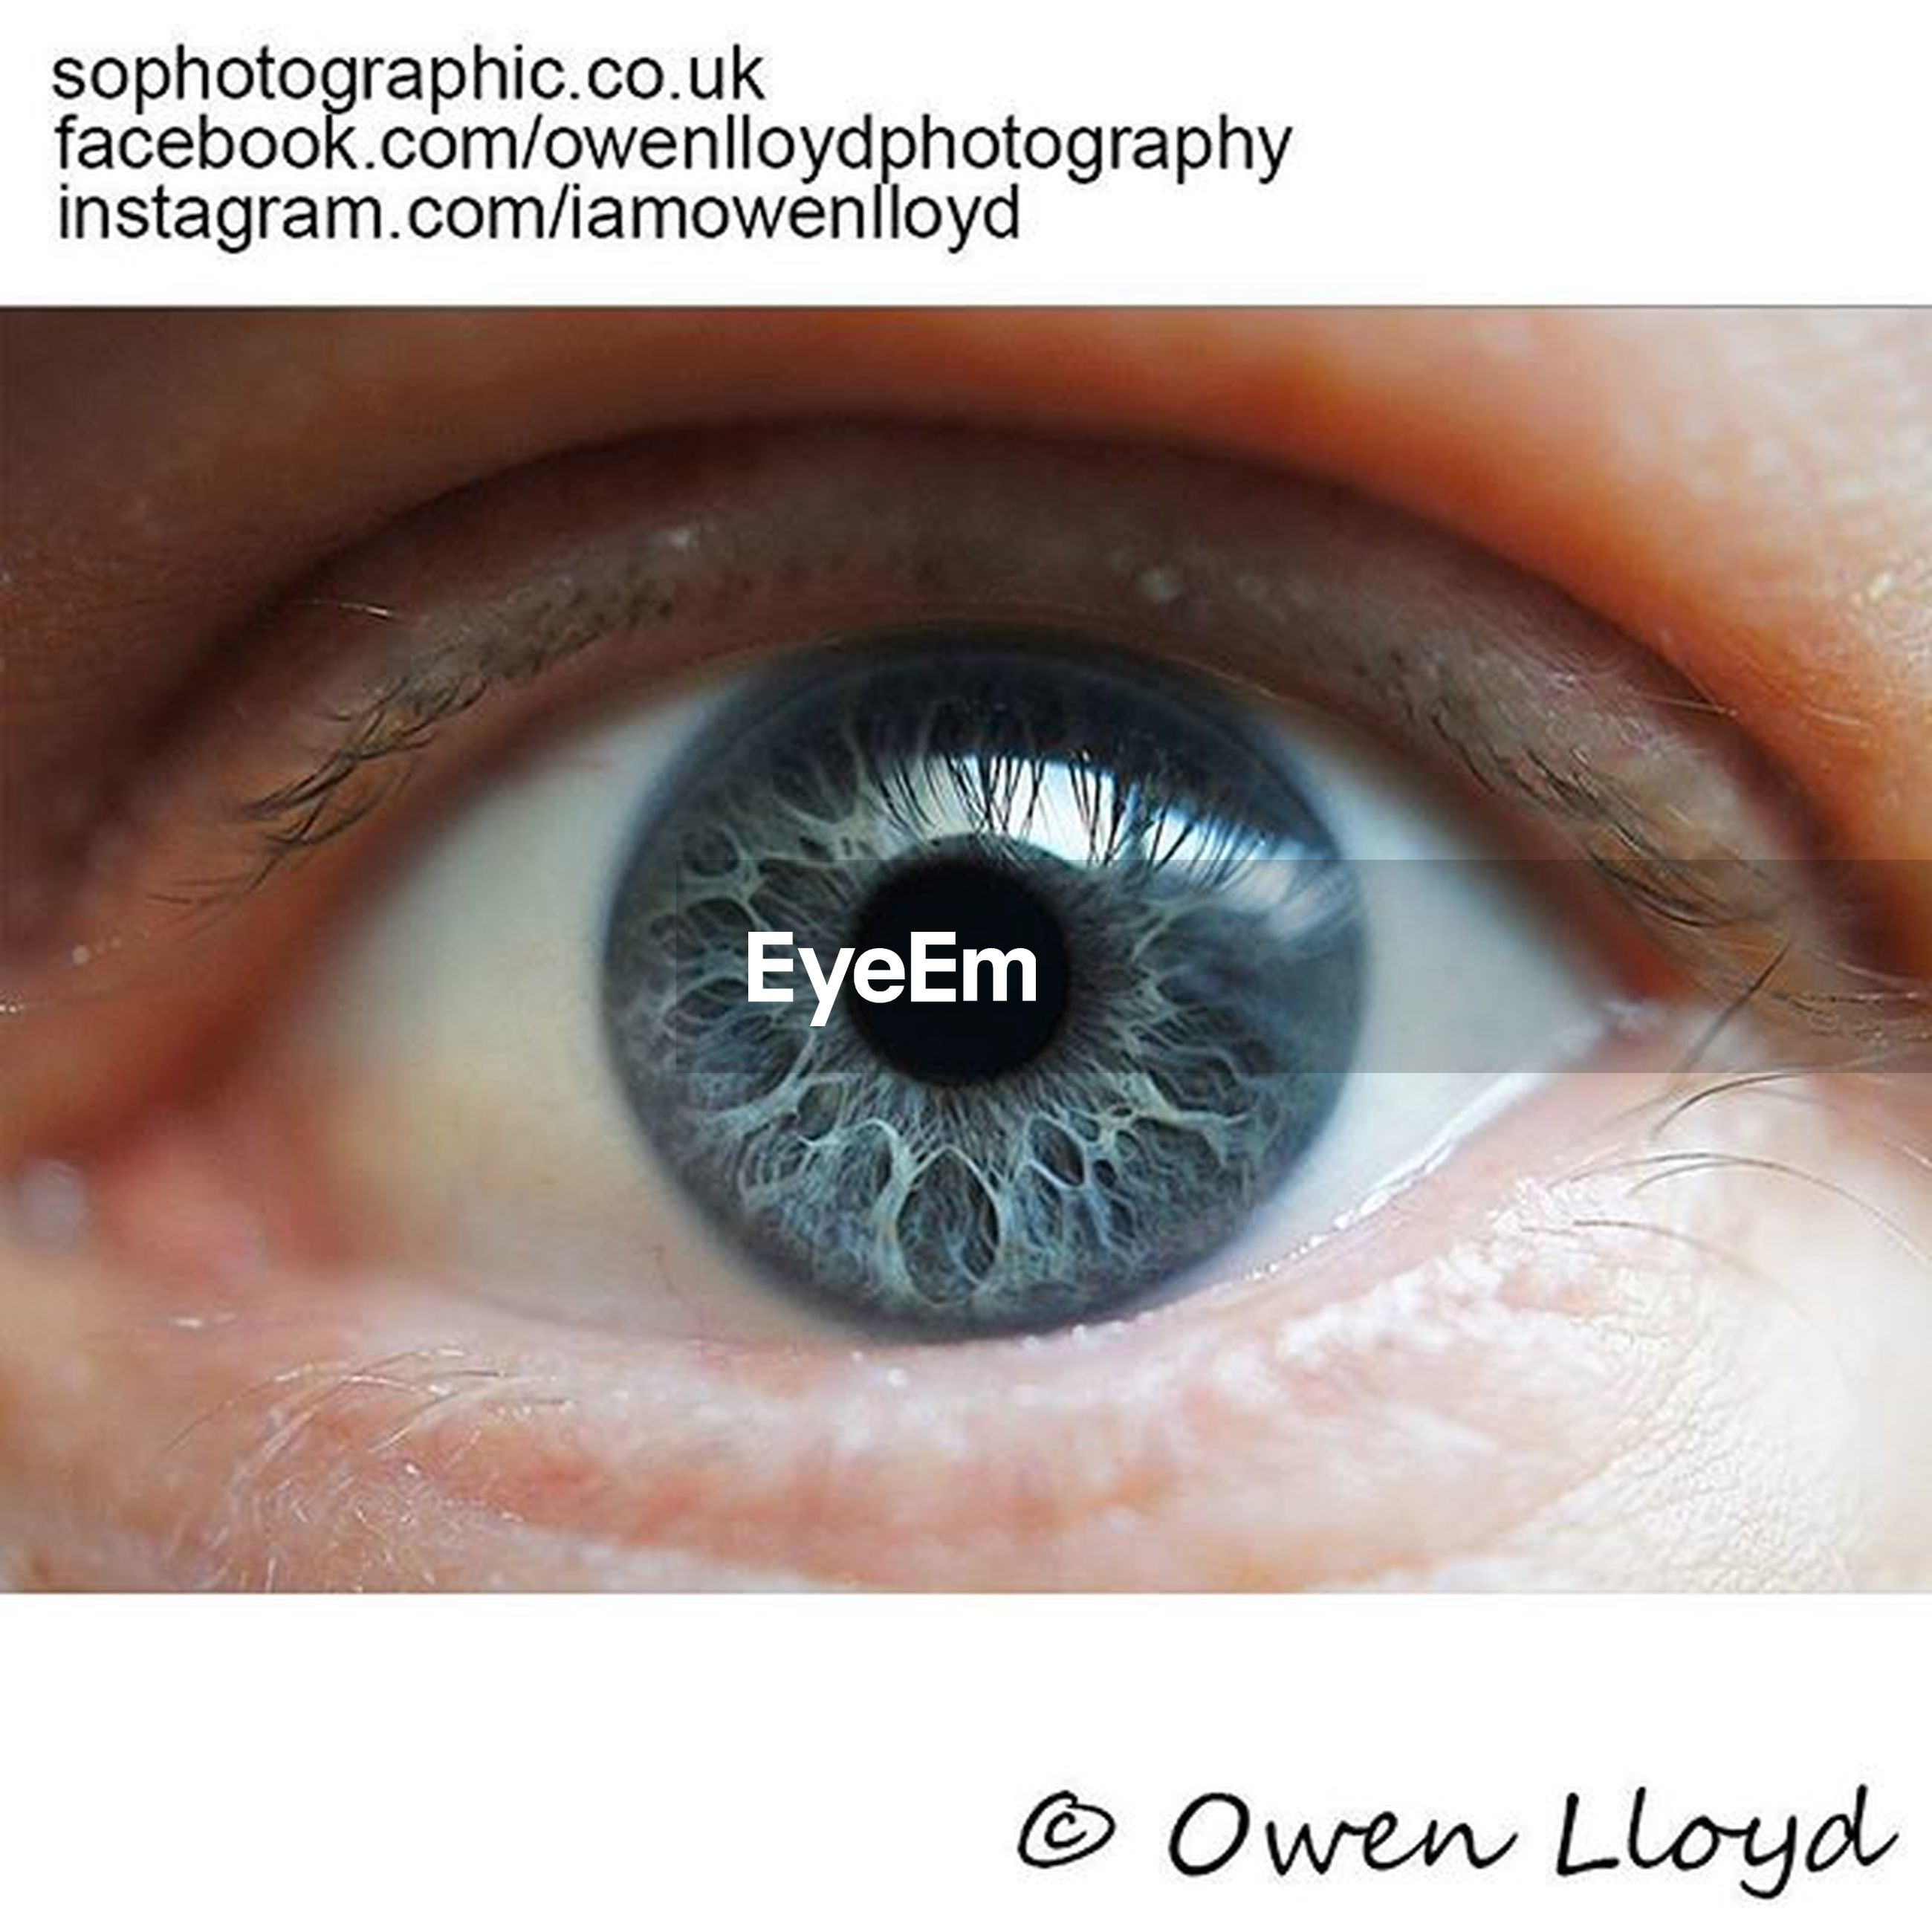 indoors, close-up, human eye, part of, eyesight, communication, extreme close-up, text, eyelash, person, human skin, sensory perception, lifestyles, unrecognizable person, western script, auto post production filter, circle